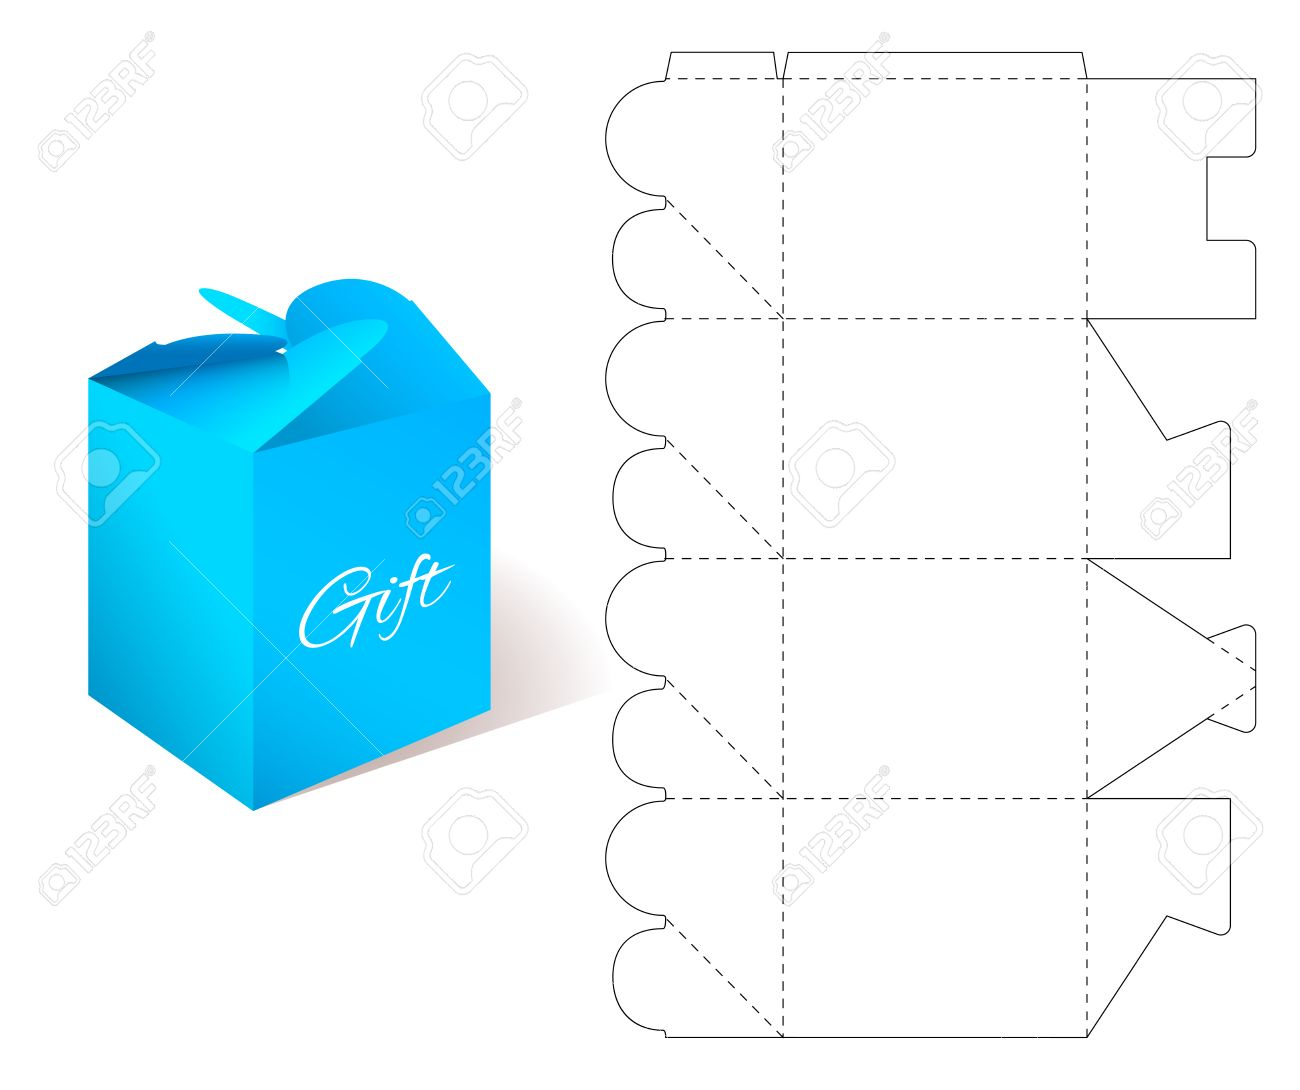 Paper box gift paper box with blueprint template illustration gift paper box with blueprint template illustration of gift craft box for malvernweather Images